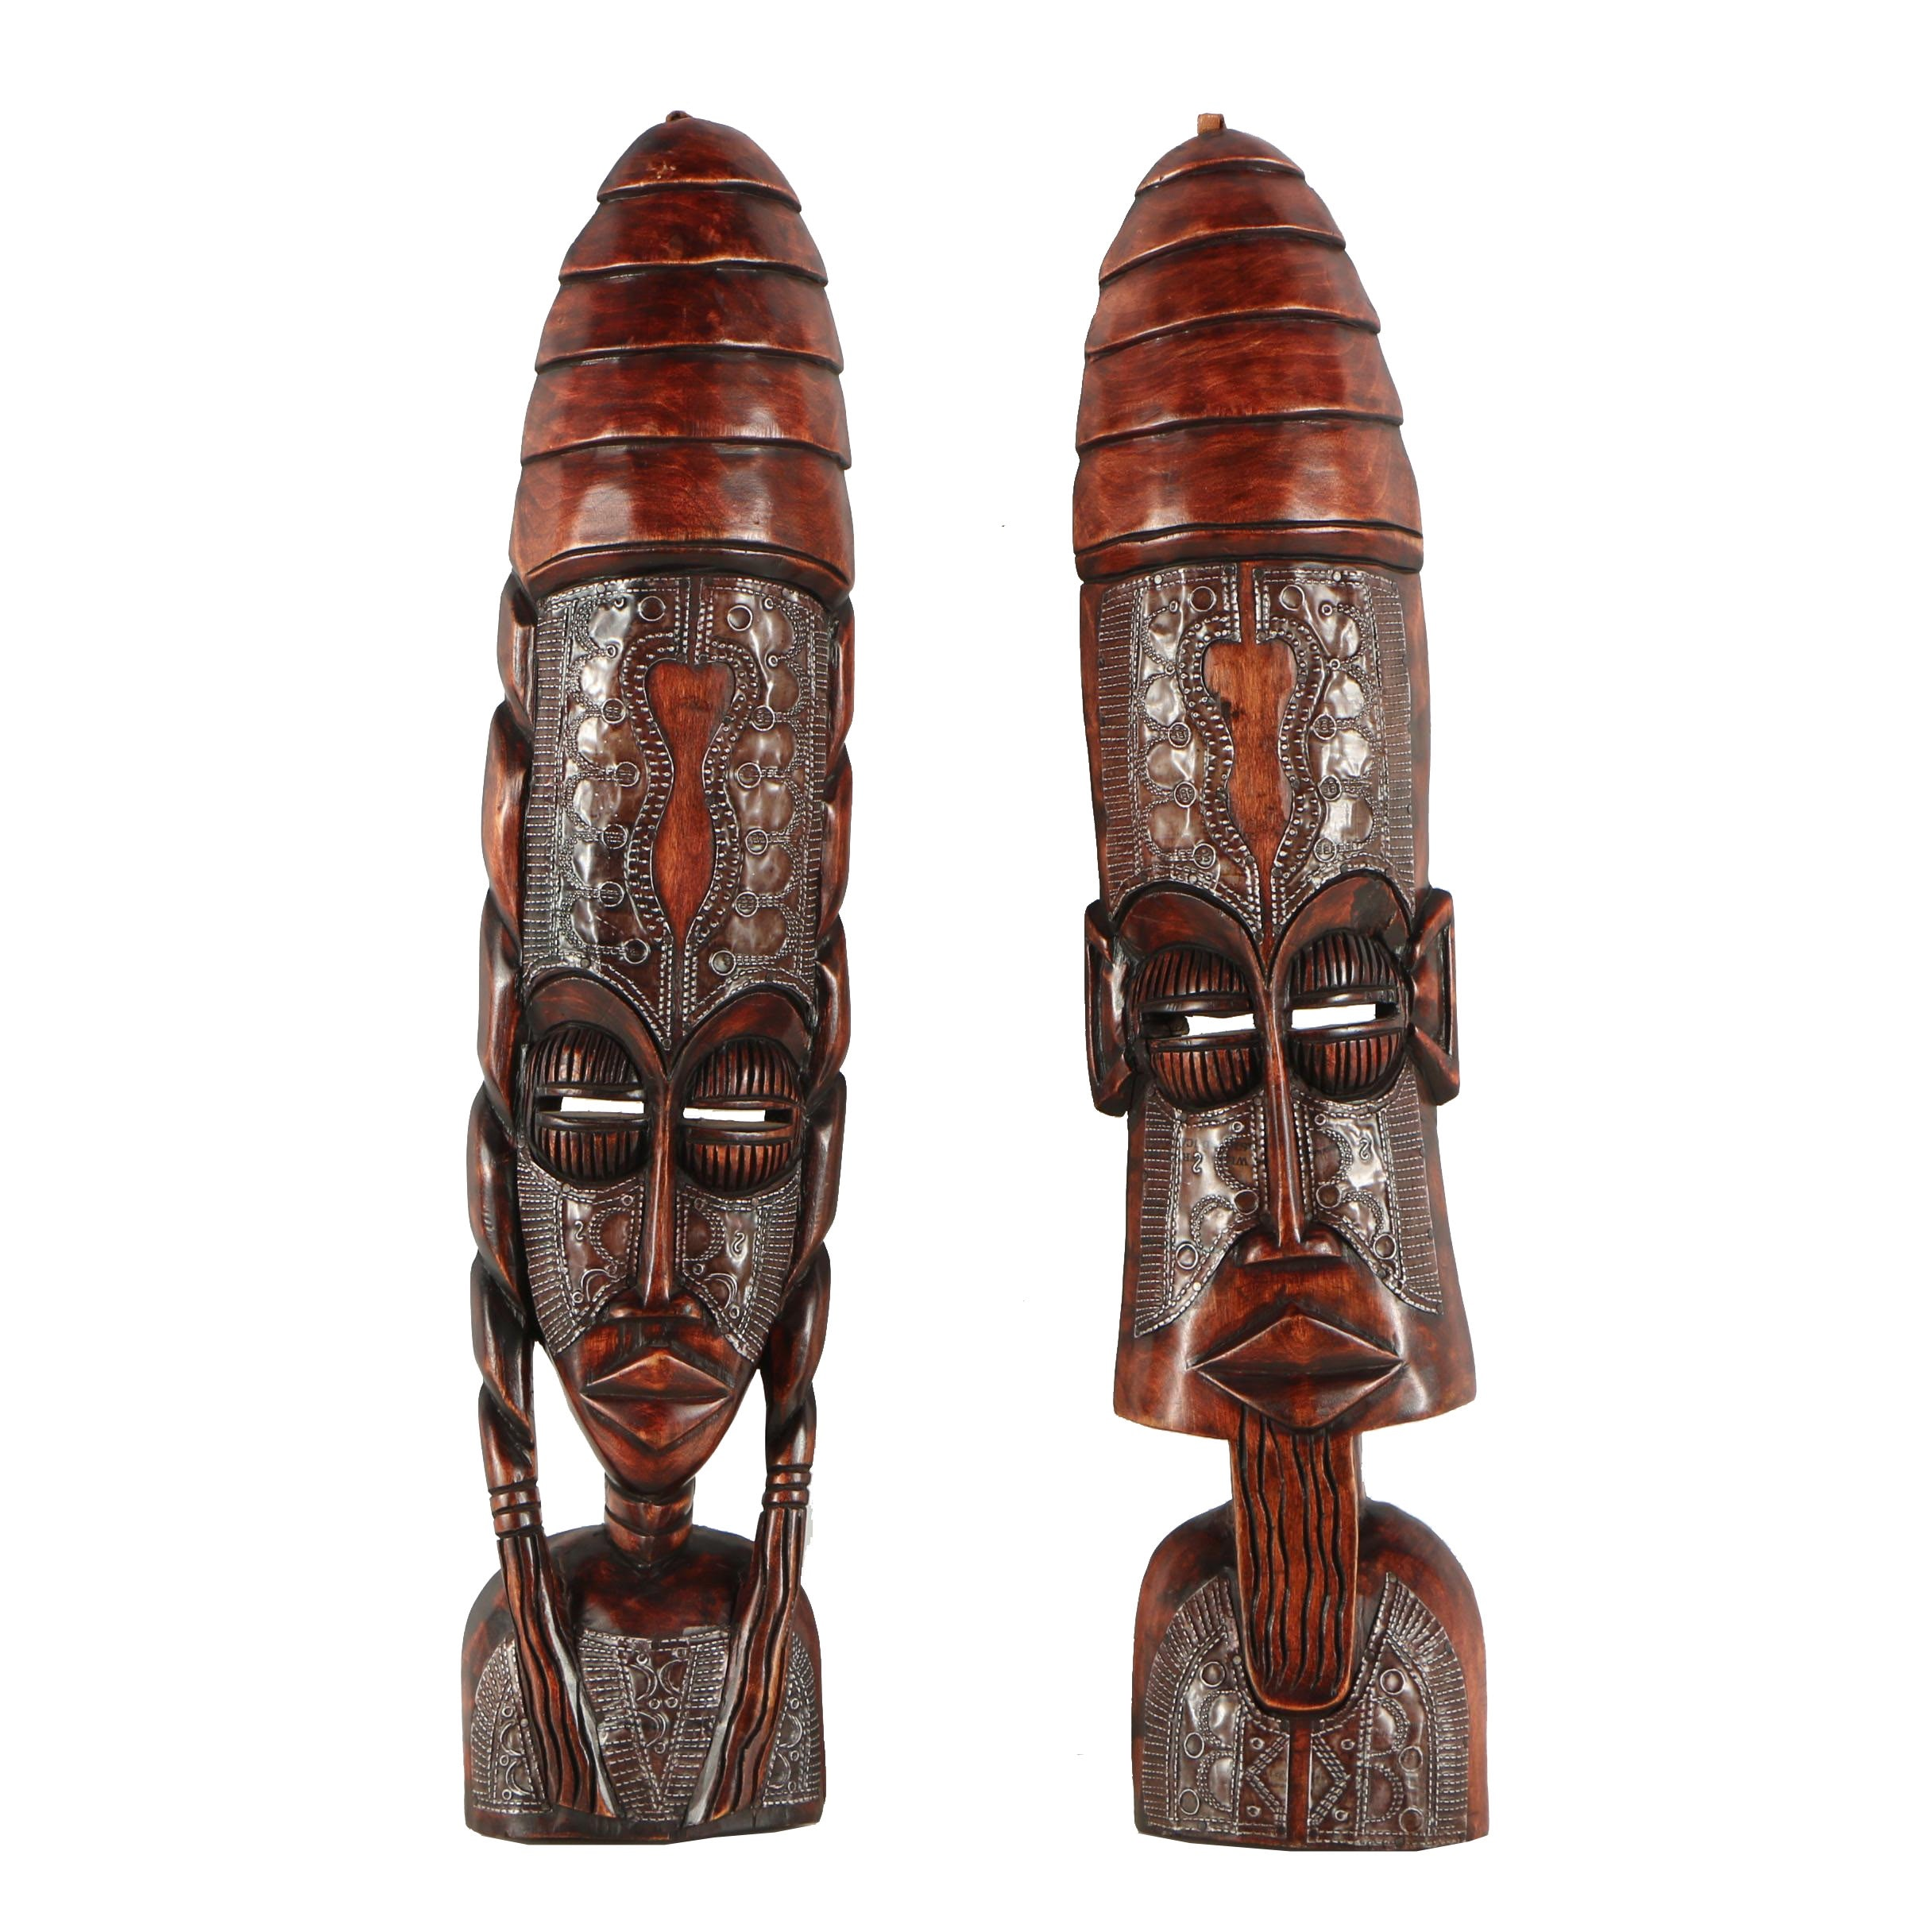 Pair Ghanaian Style Masks with Inlaid Metal